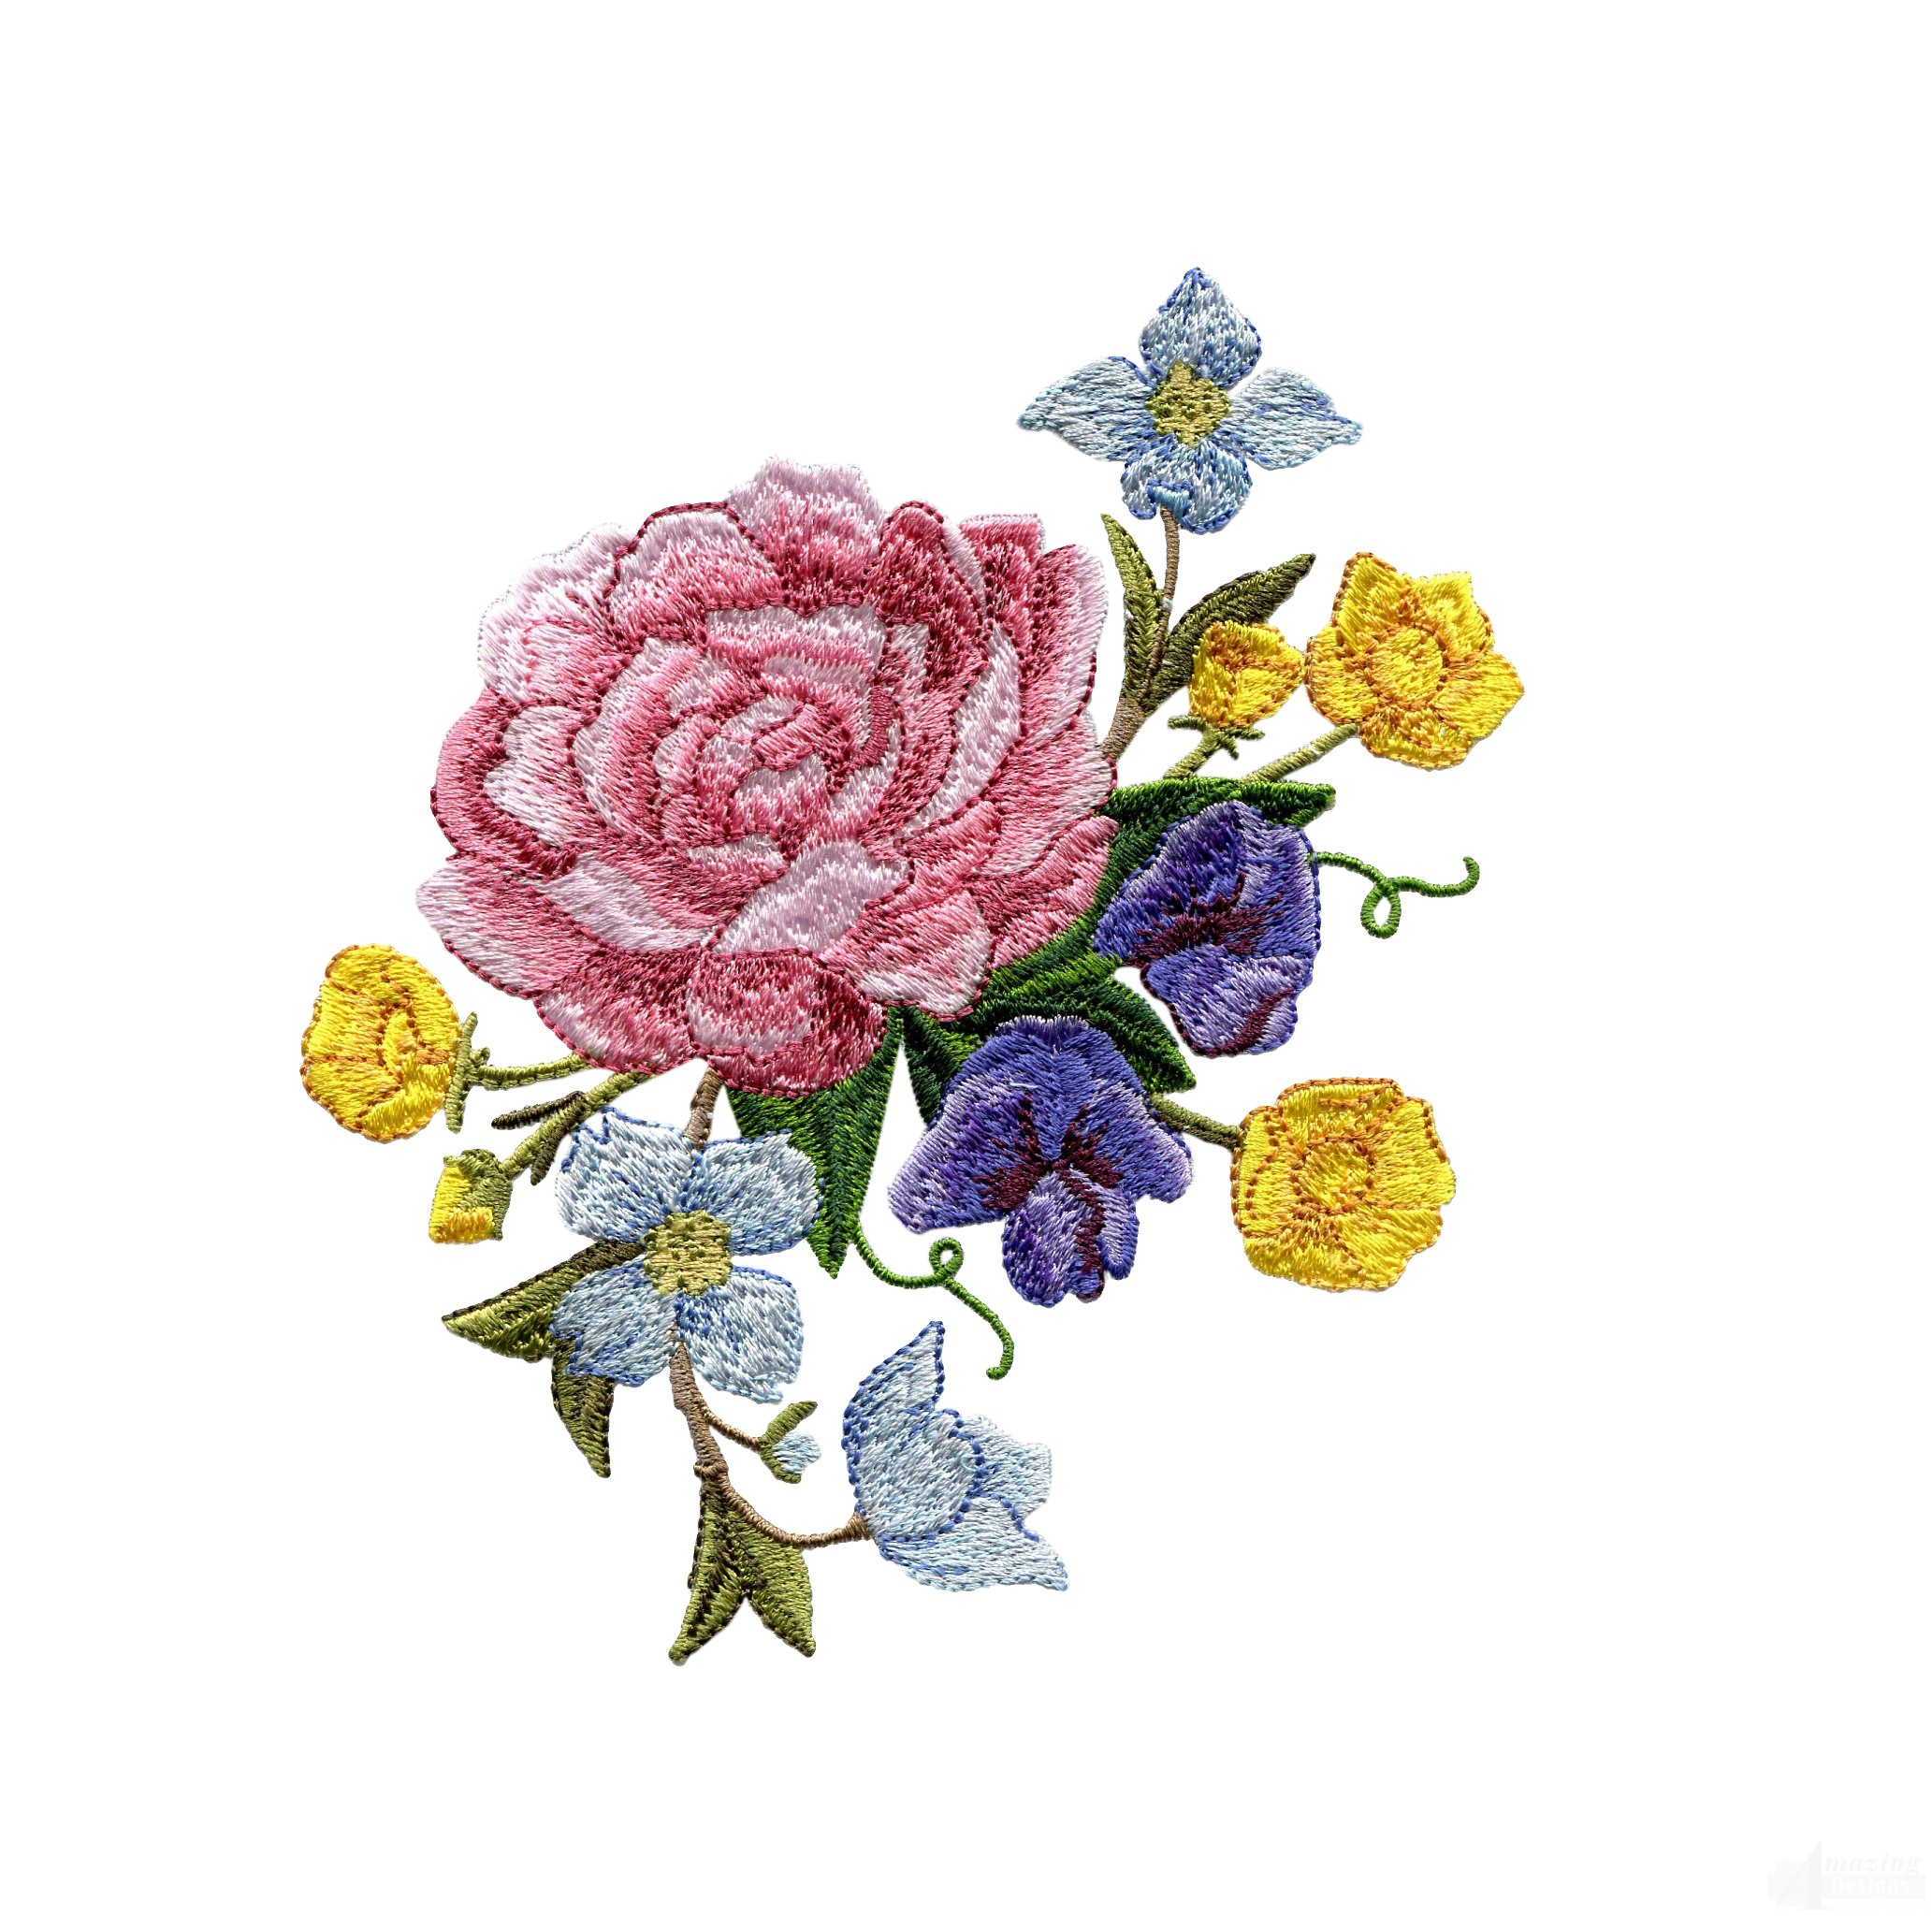 Stand Alone Lace Embroidery Designs : Amazing designs size it monogramming software aprijer